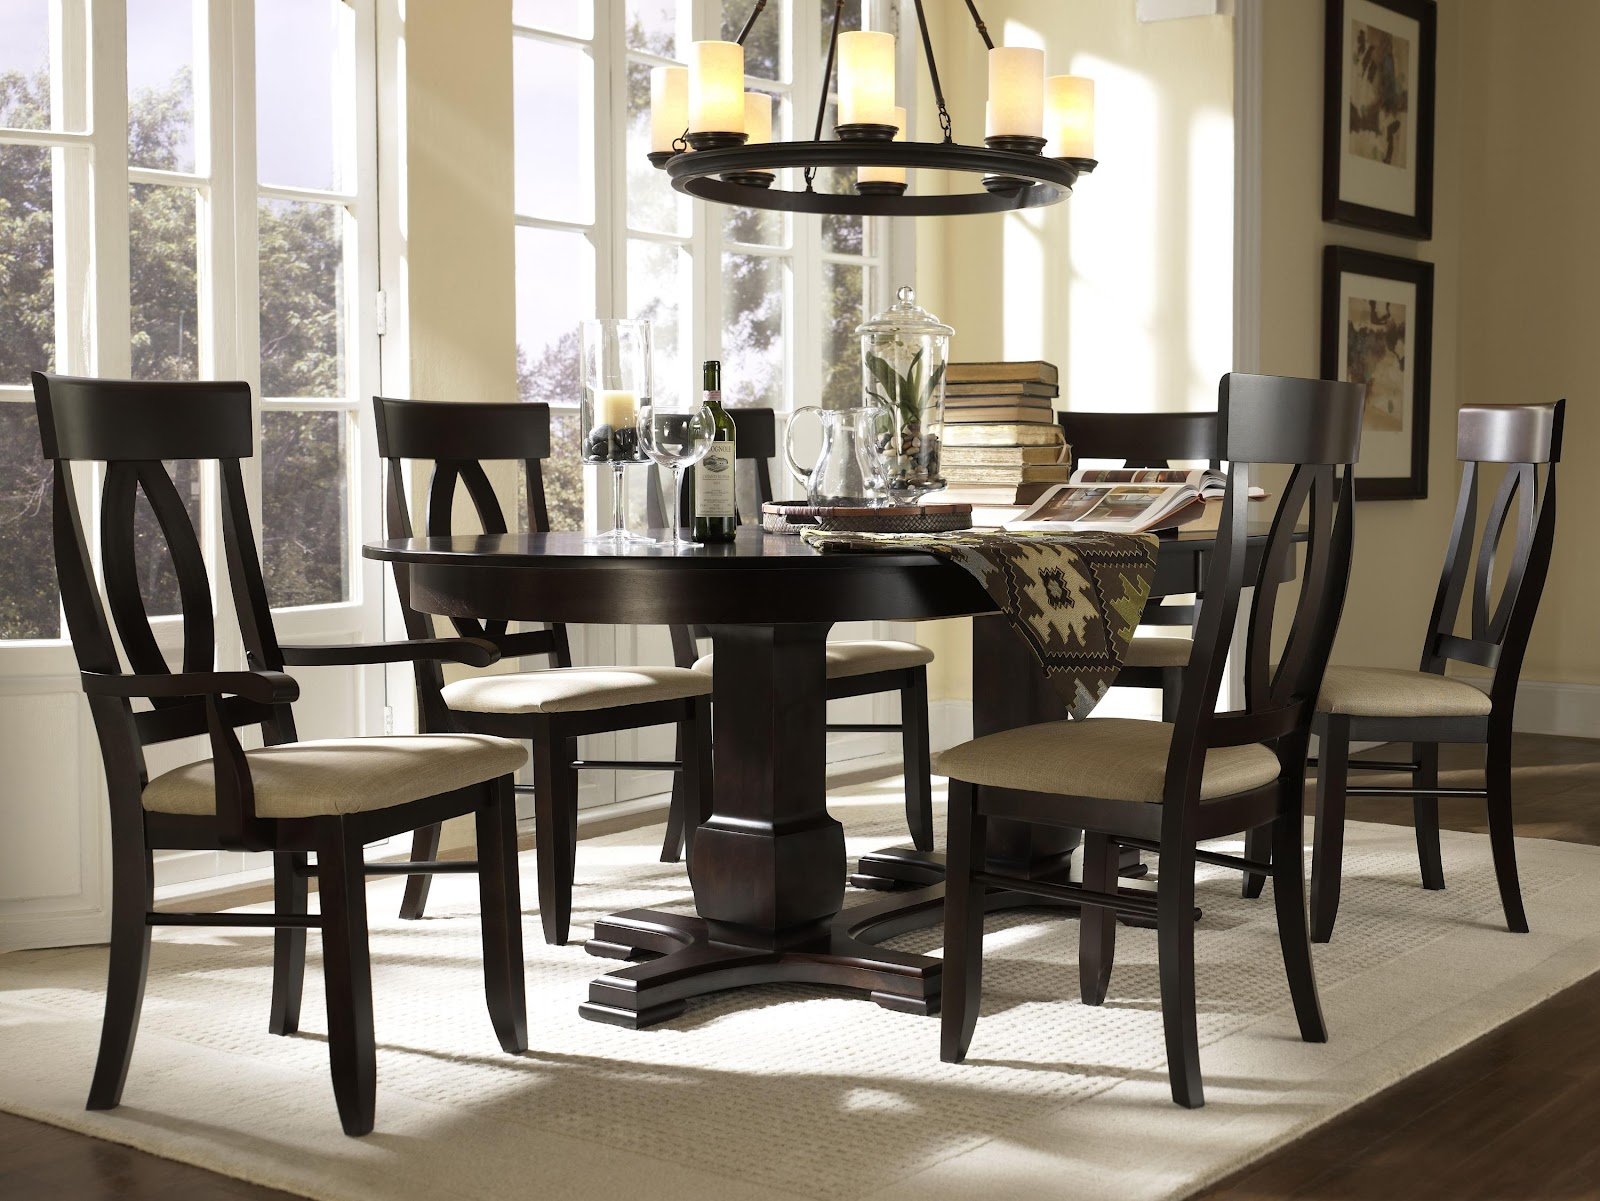 Canadel furniture long island new york ny dining room for Breakfast room furniture